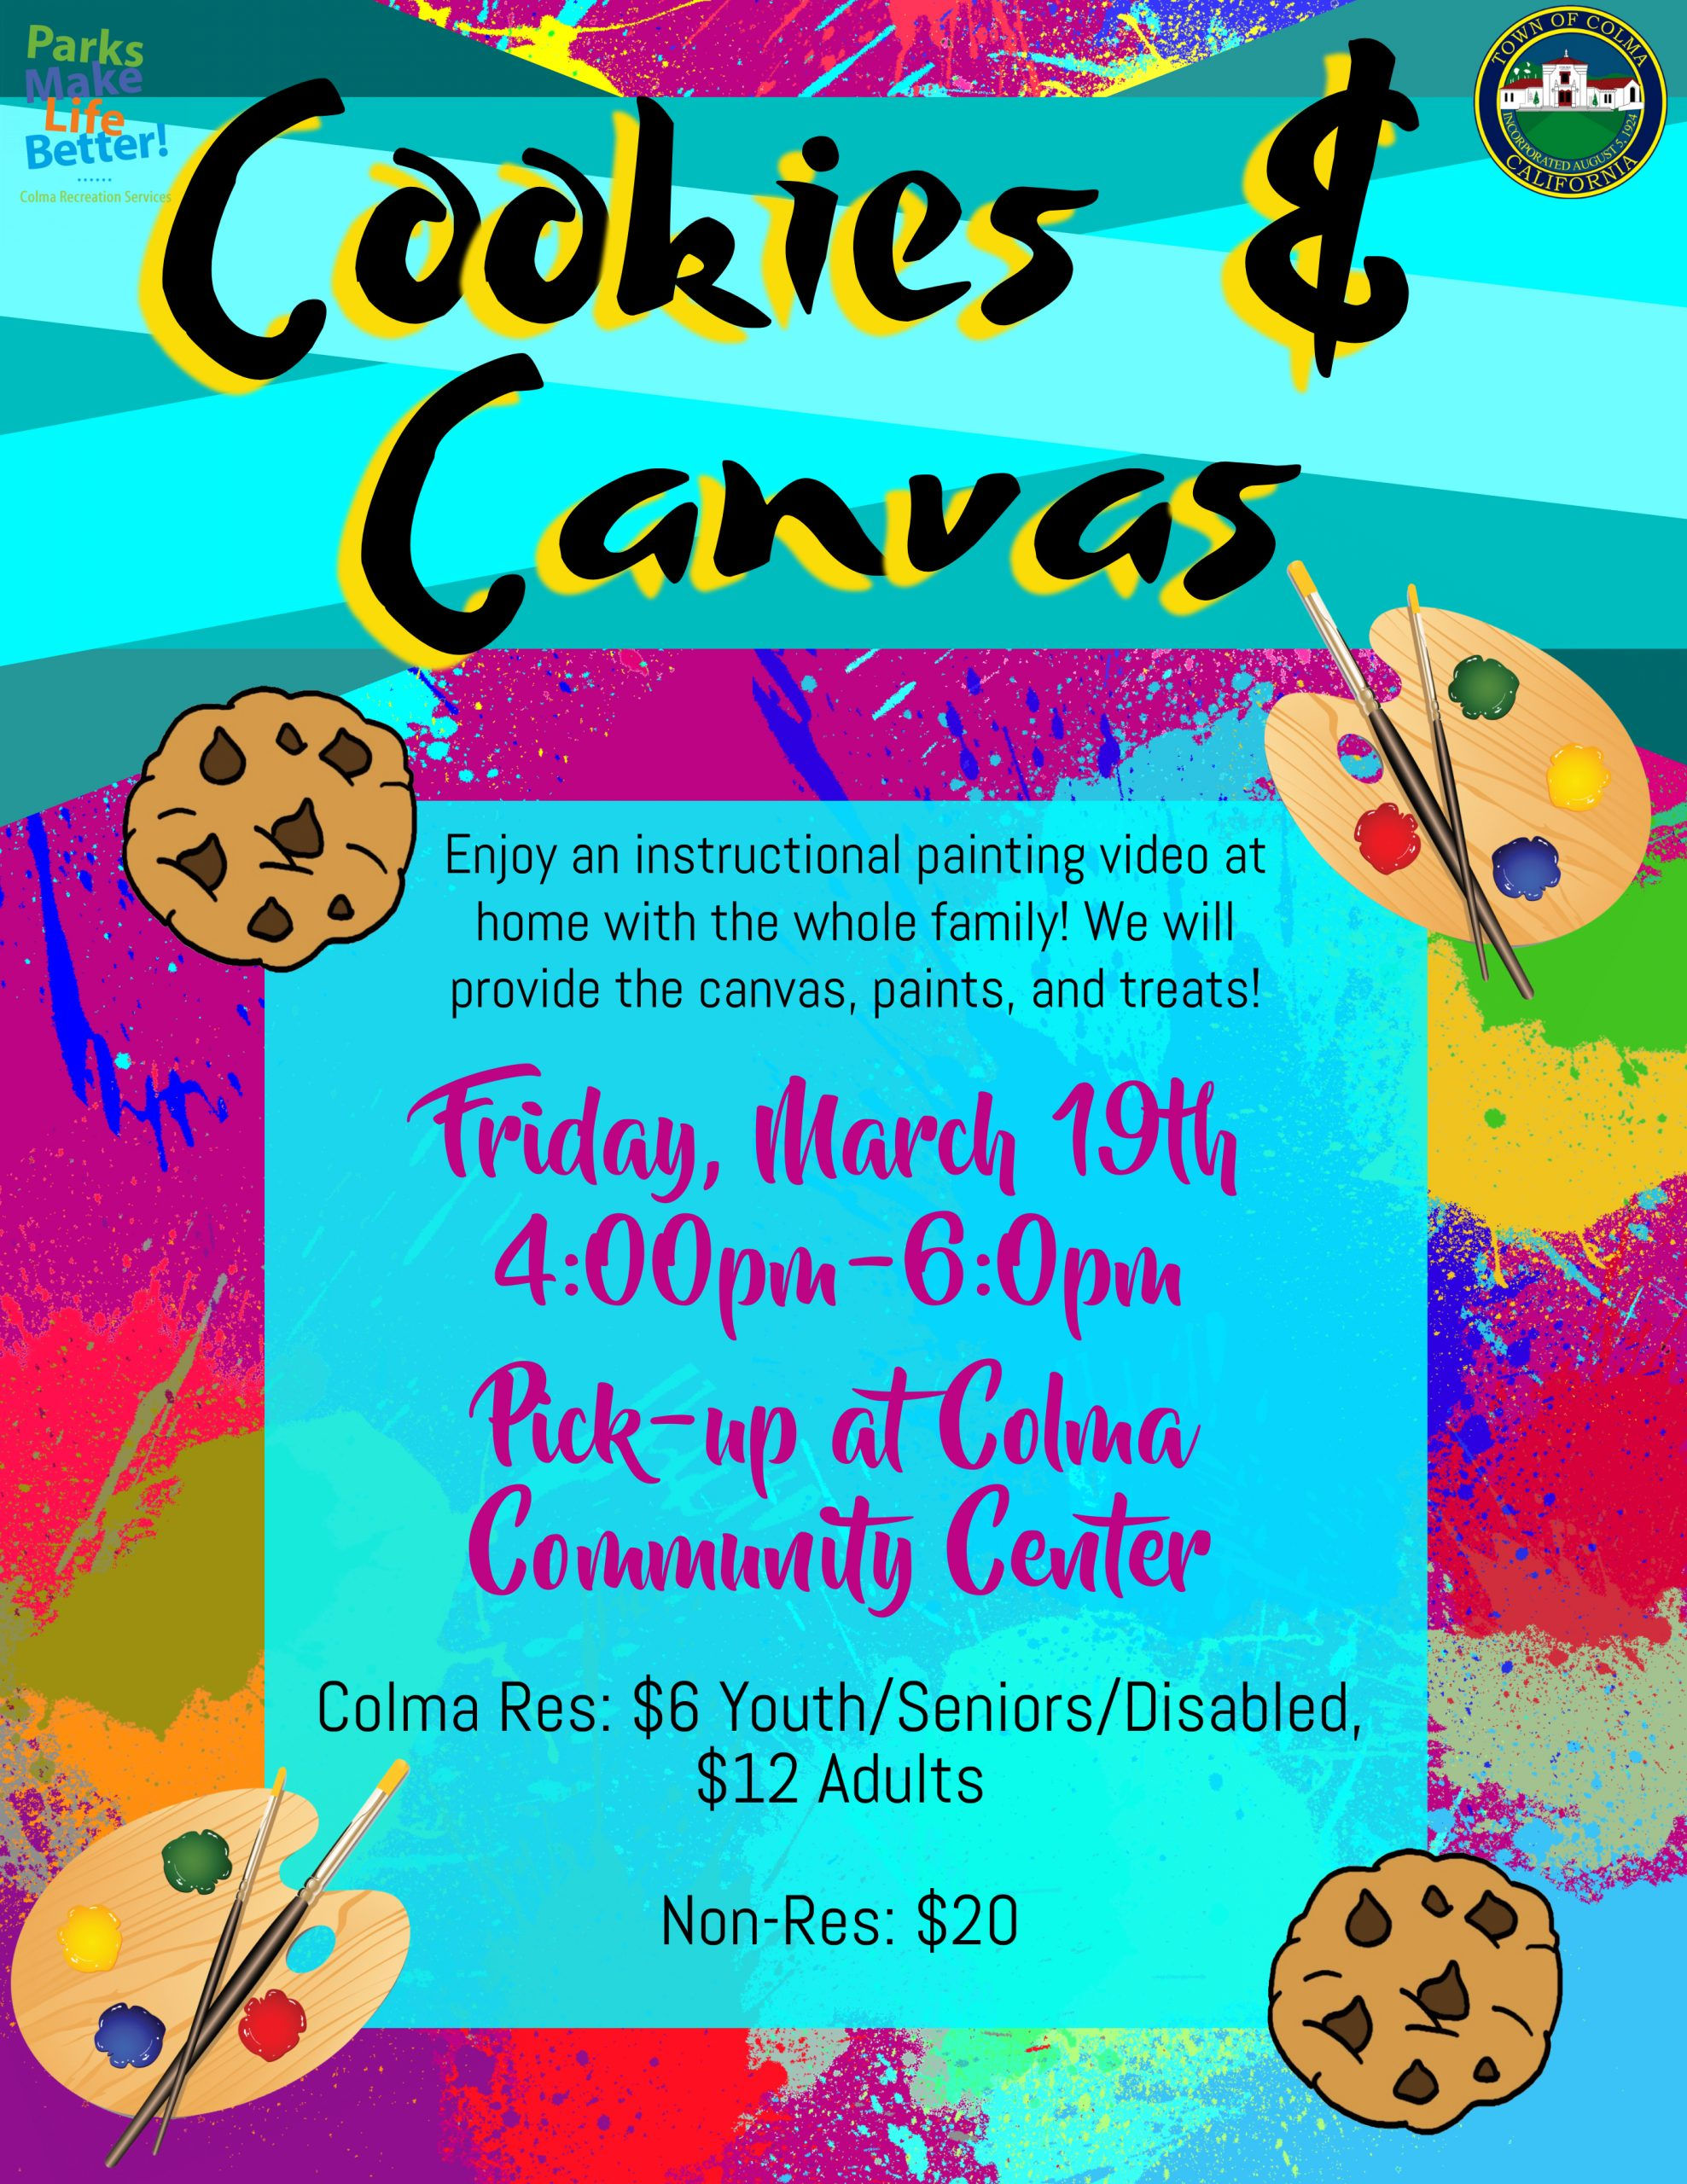 Cookies and Canvas Flyer